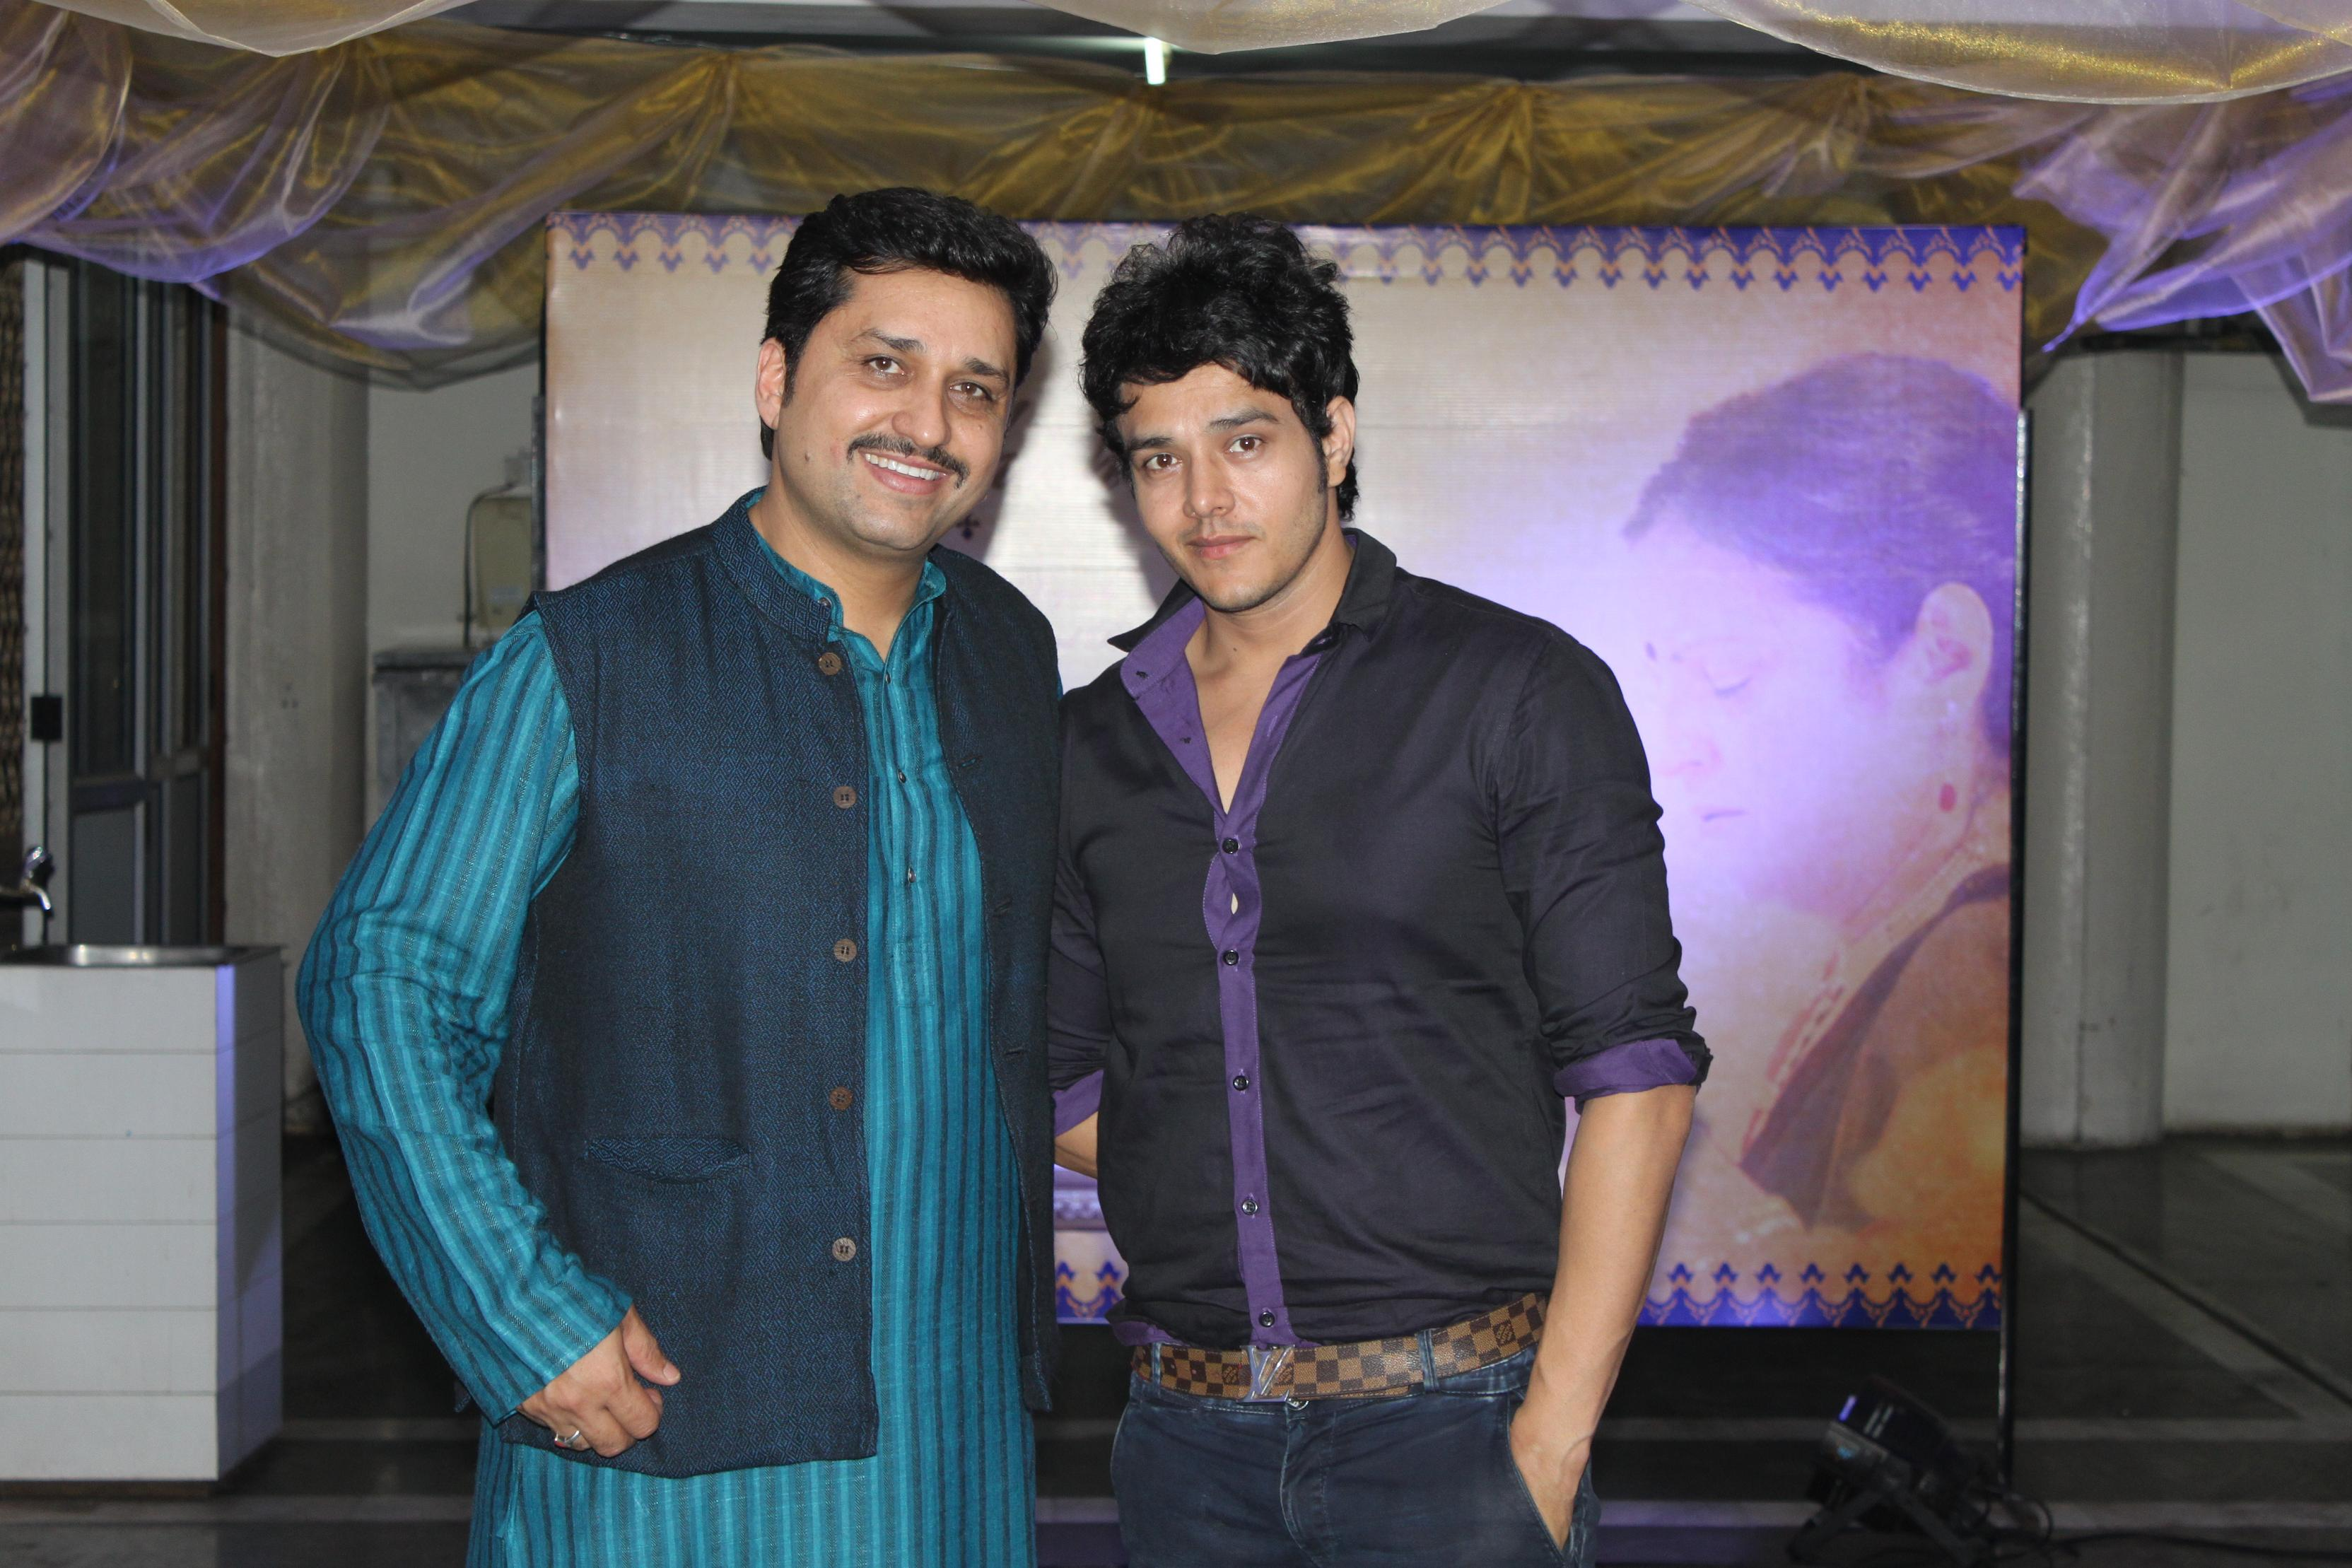 Gautam Chaturvedi and  Aniruddh Dave